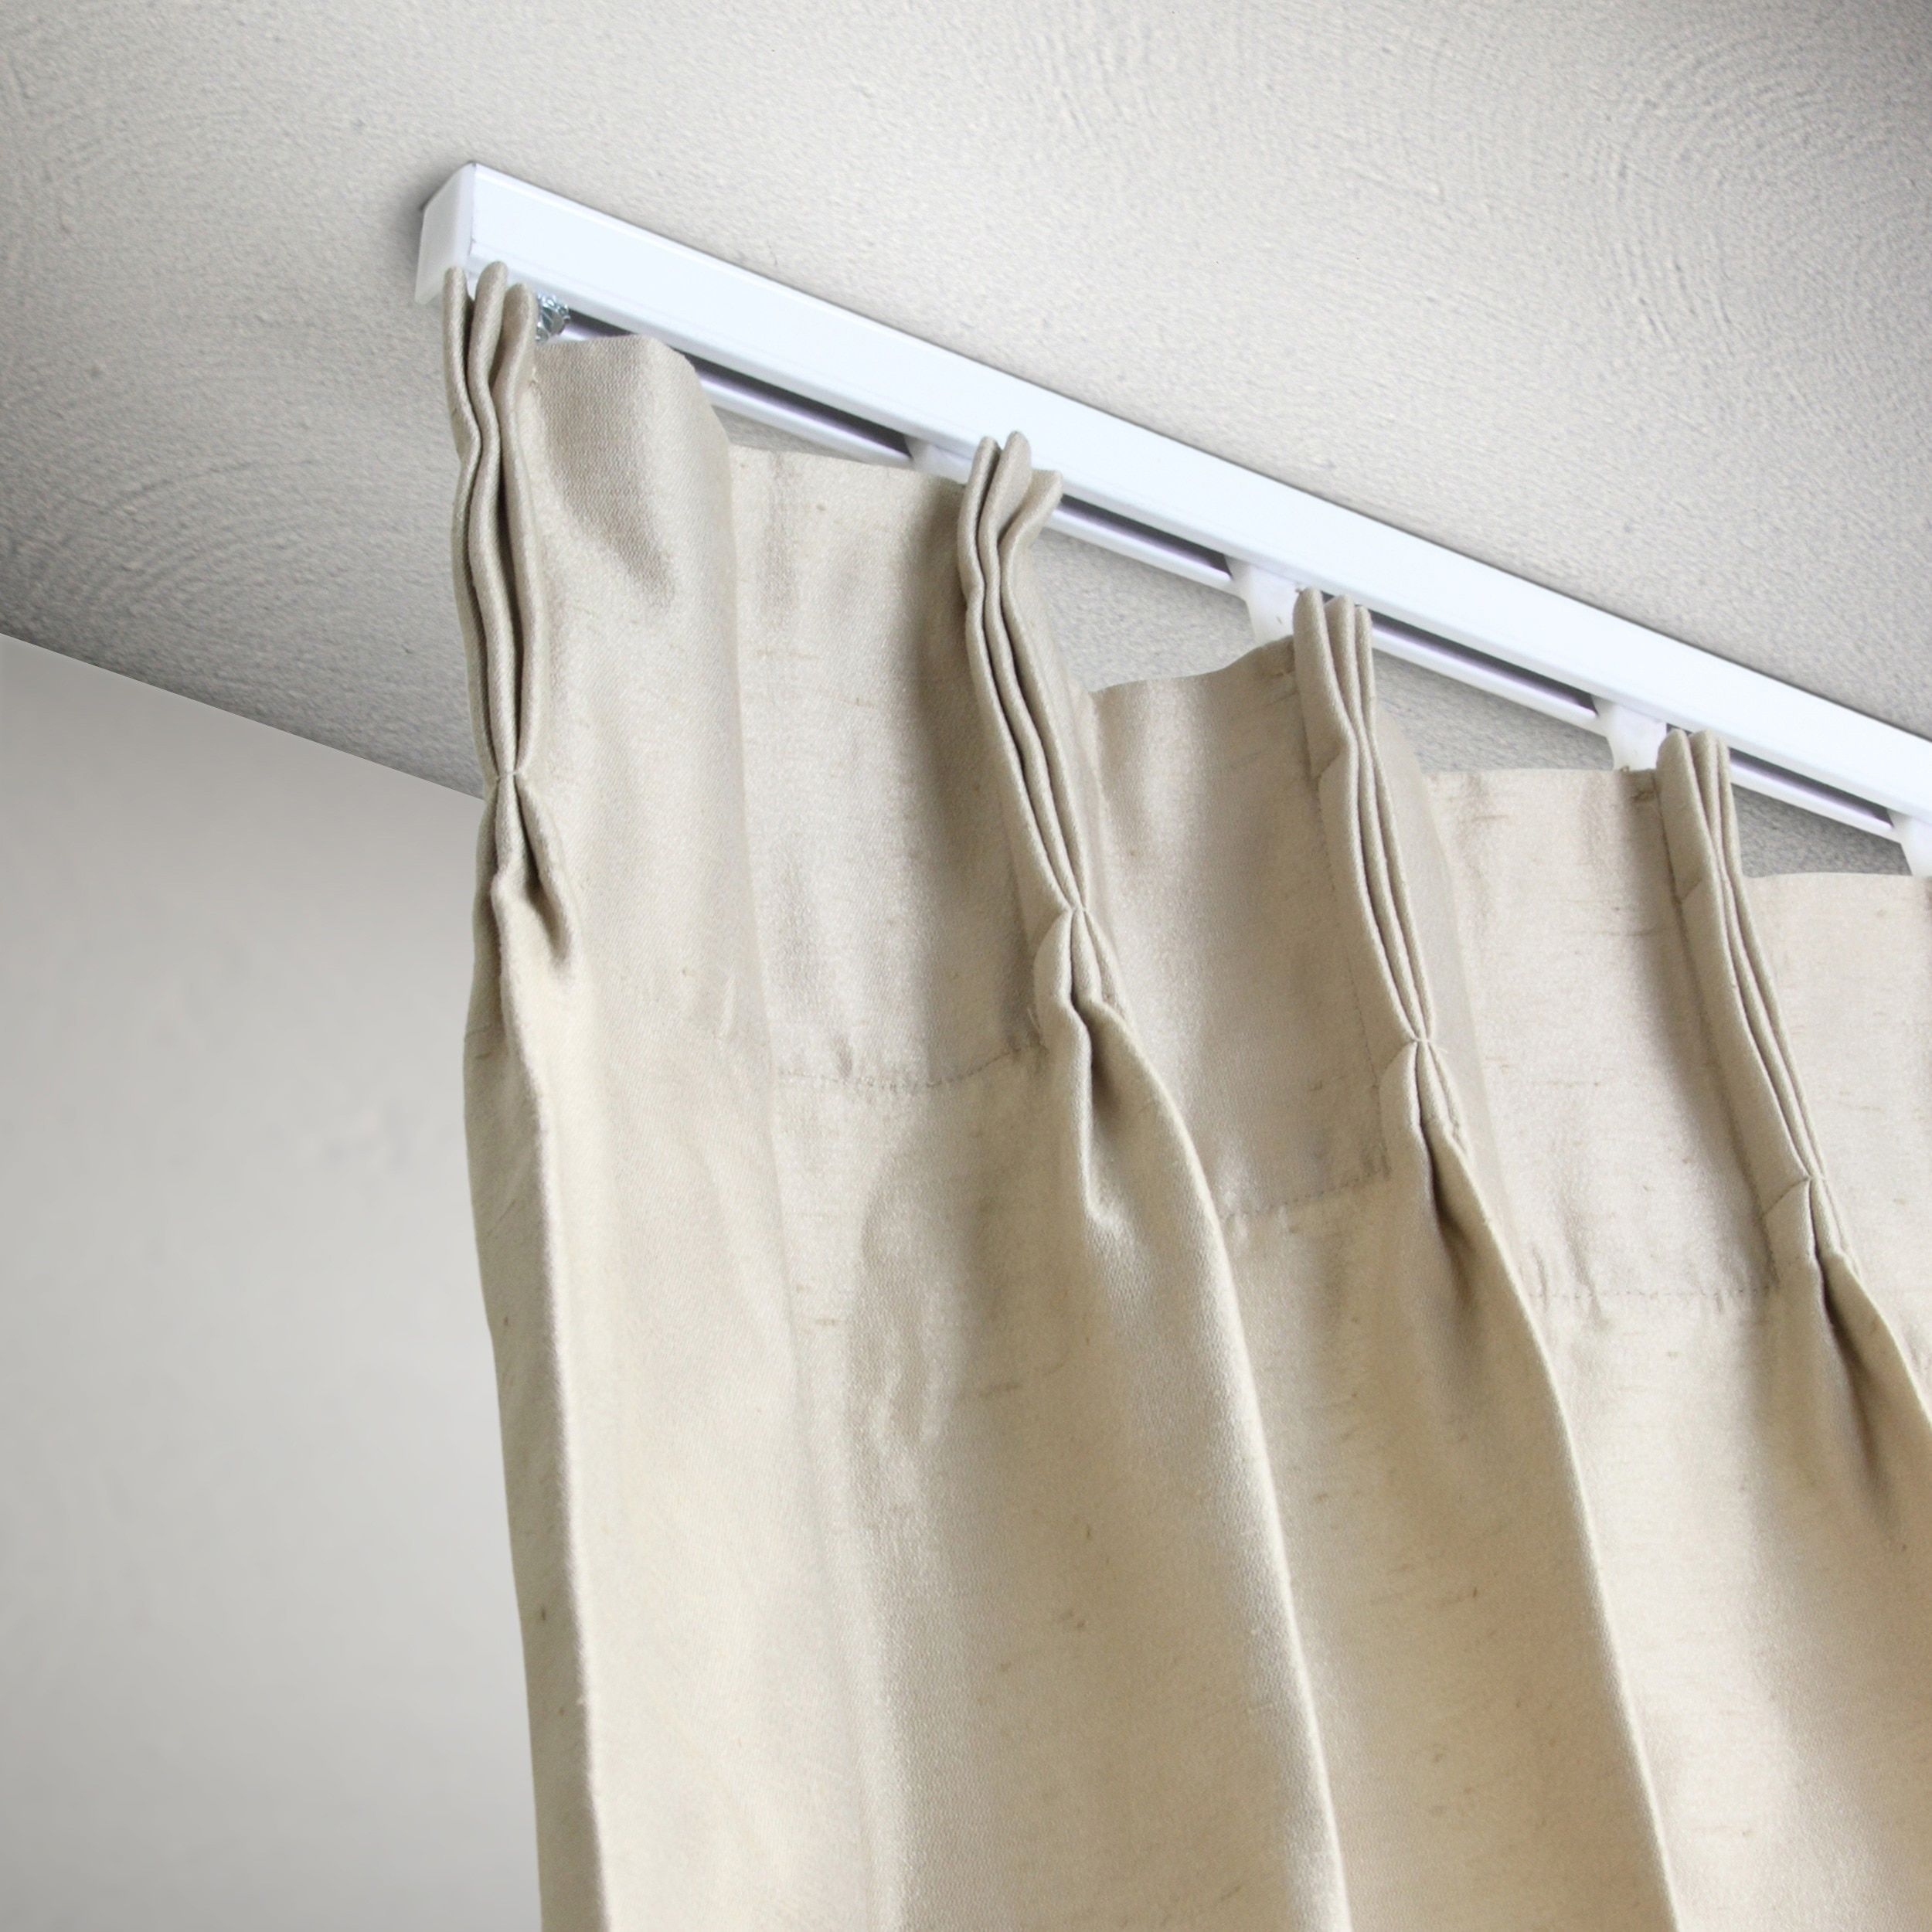 Instyledesign heavy duty white ceiling curtain track room divider